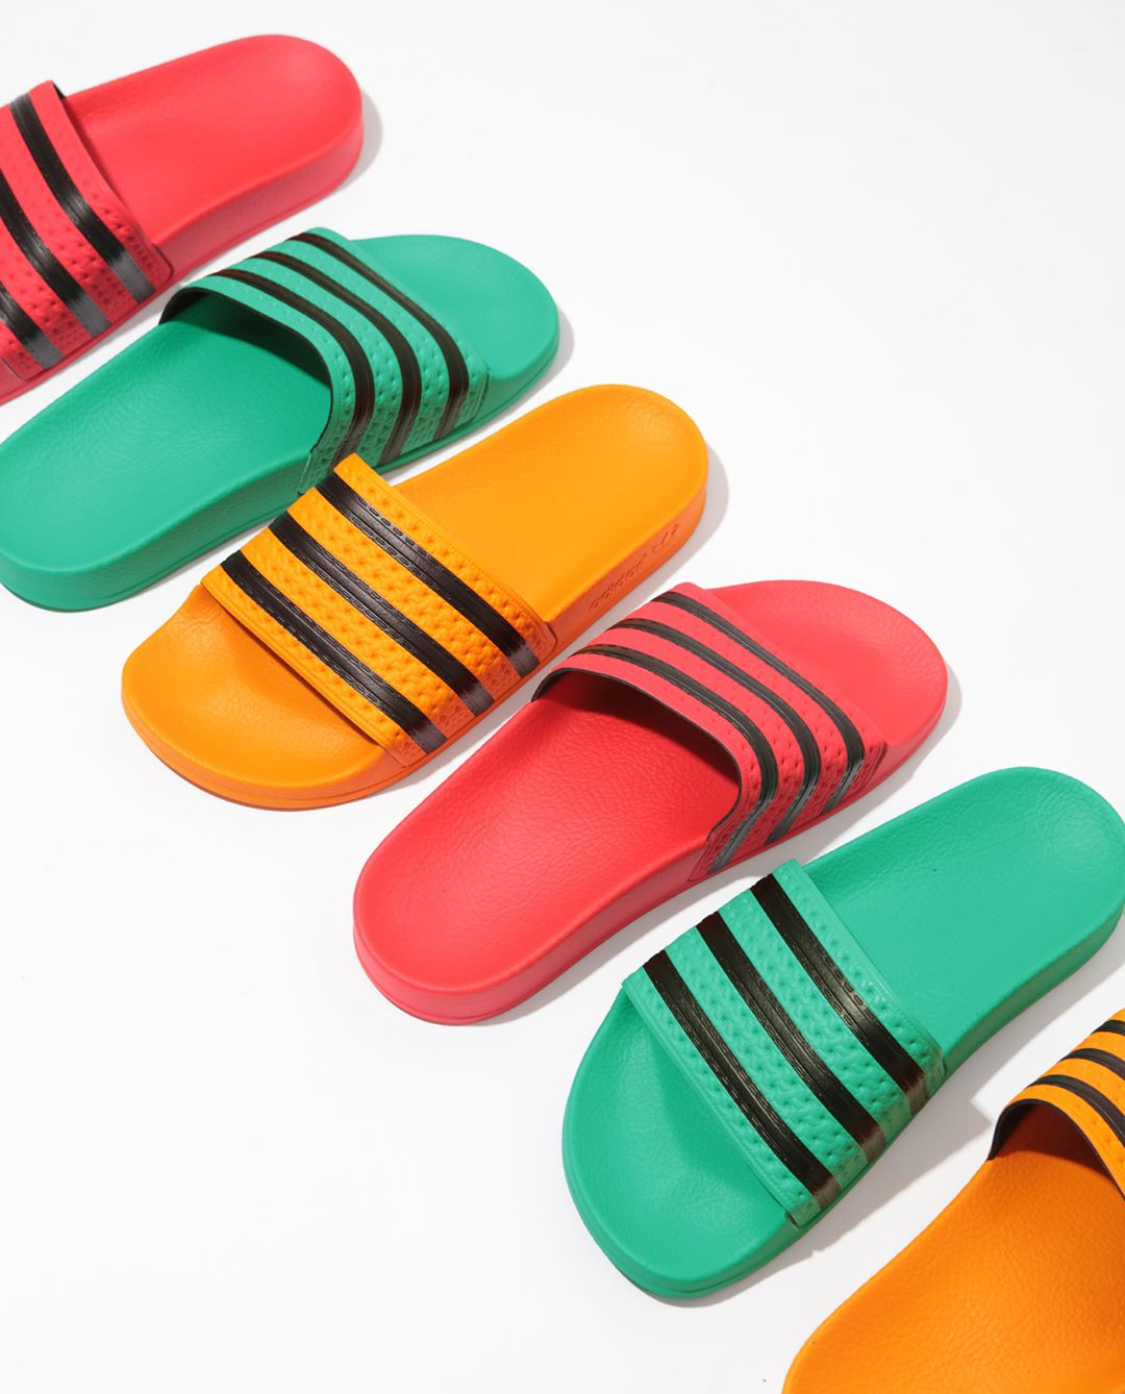 839d81e74 This Latest adidas Adilette Slide IS THE Summer Sandal 0f 2018 — CNK  DailyChicksNKicks